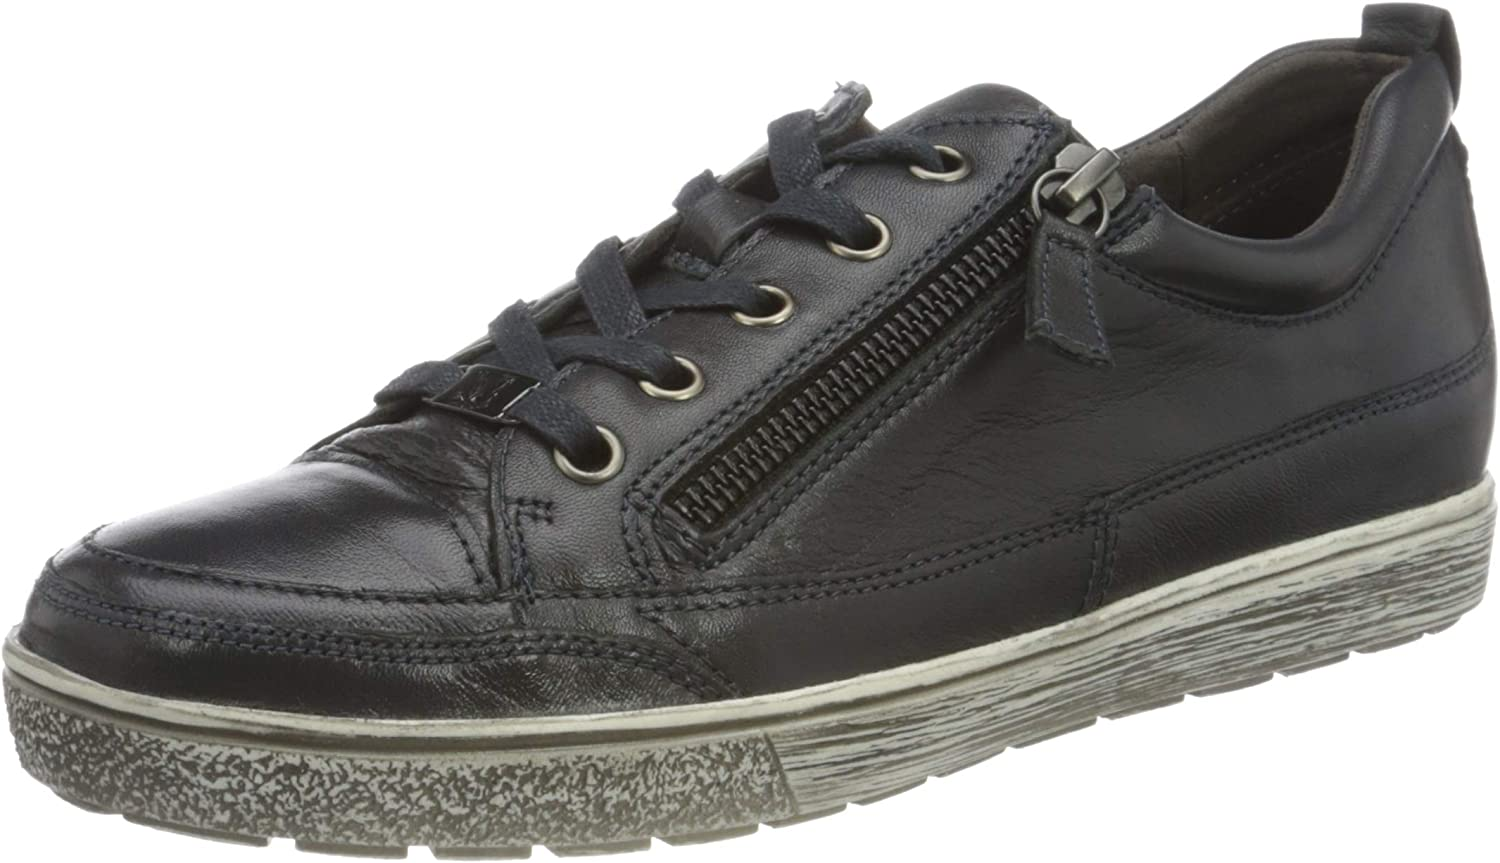 Caprice Women's Don't miss the campaign Sneakers Low-top Max 46% OFF